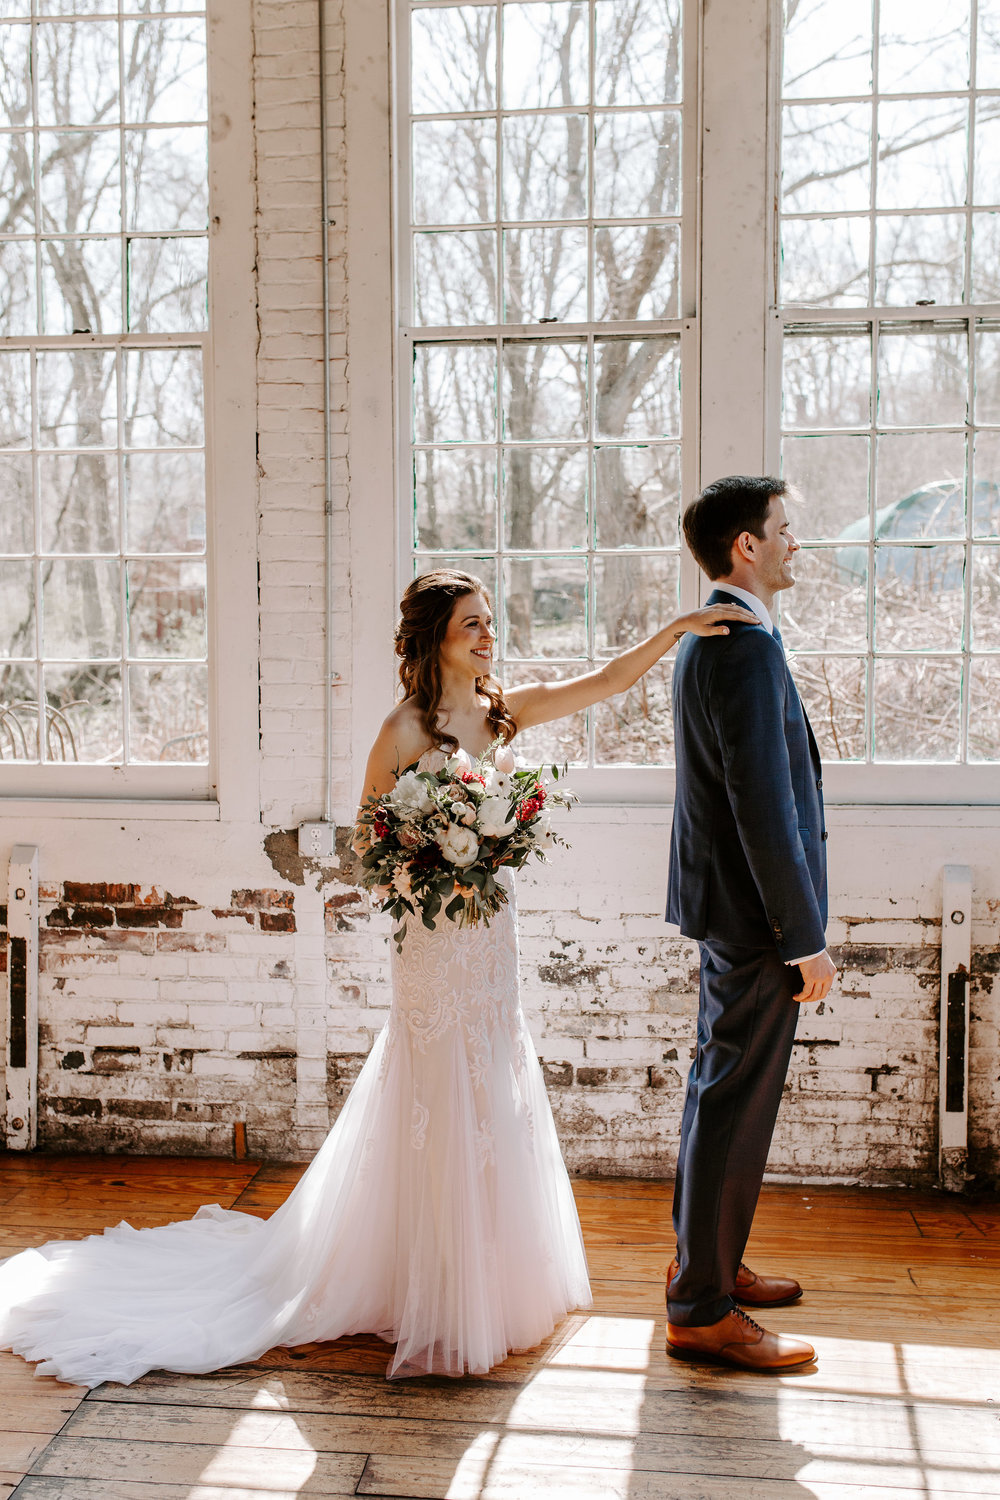 First look ideas! Mindy & Patricks Wedding at The Lace Factory - Pearl Weddings & Events